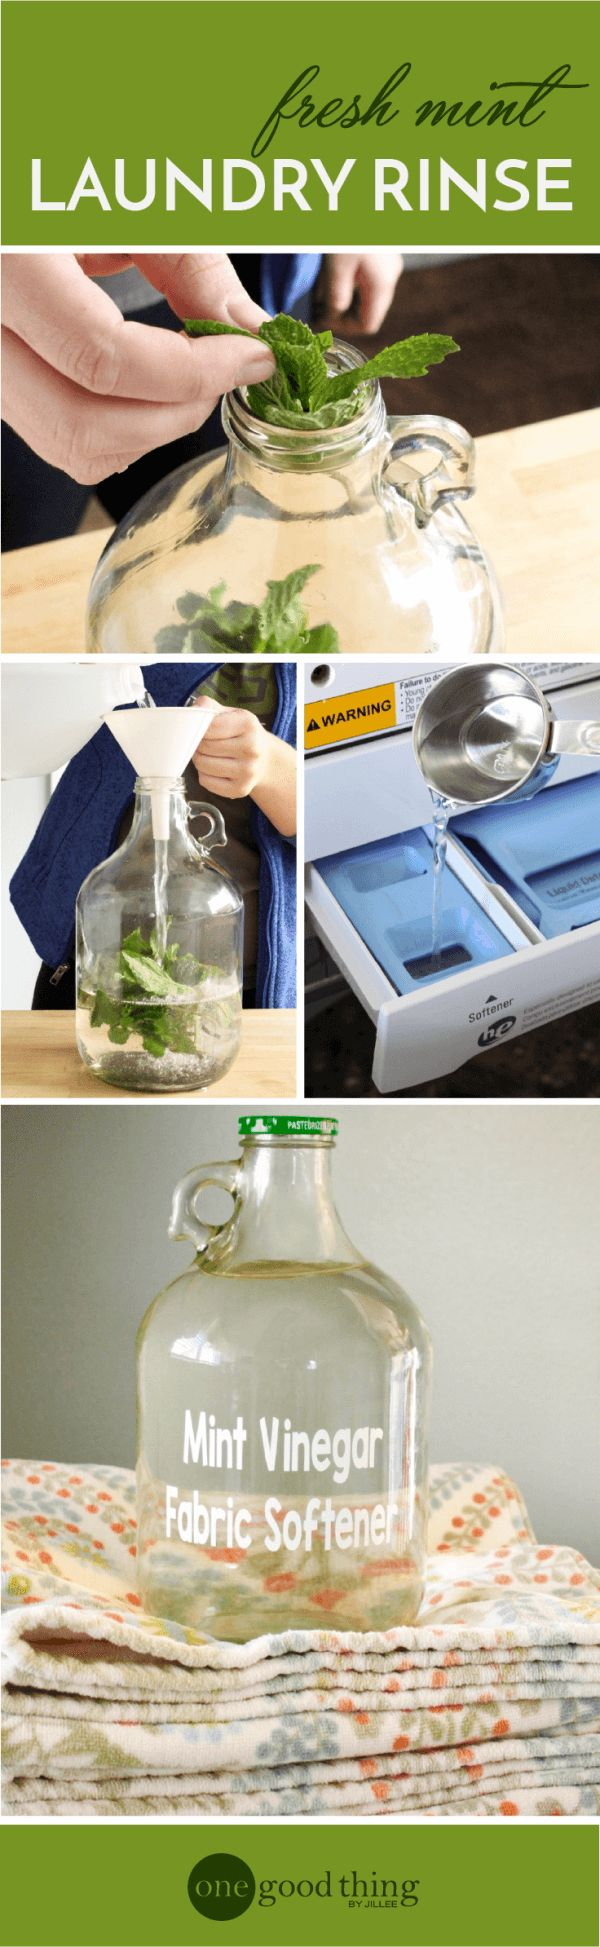 Learn how to make a scented vinegar laundry rinse that can replace your store-bought fabric softener. All you need is some fresh herbs and white vinegar!